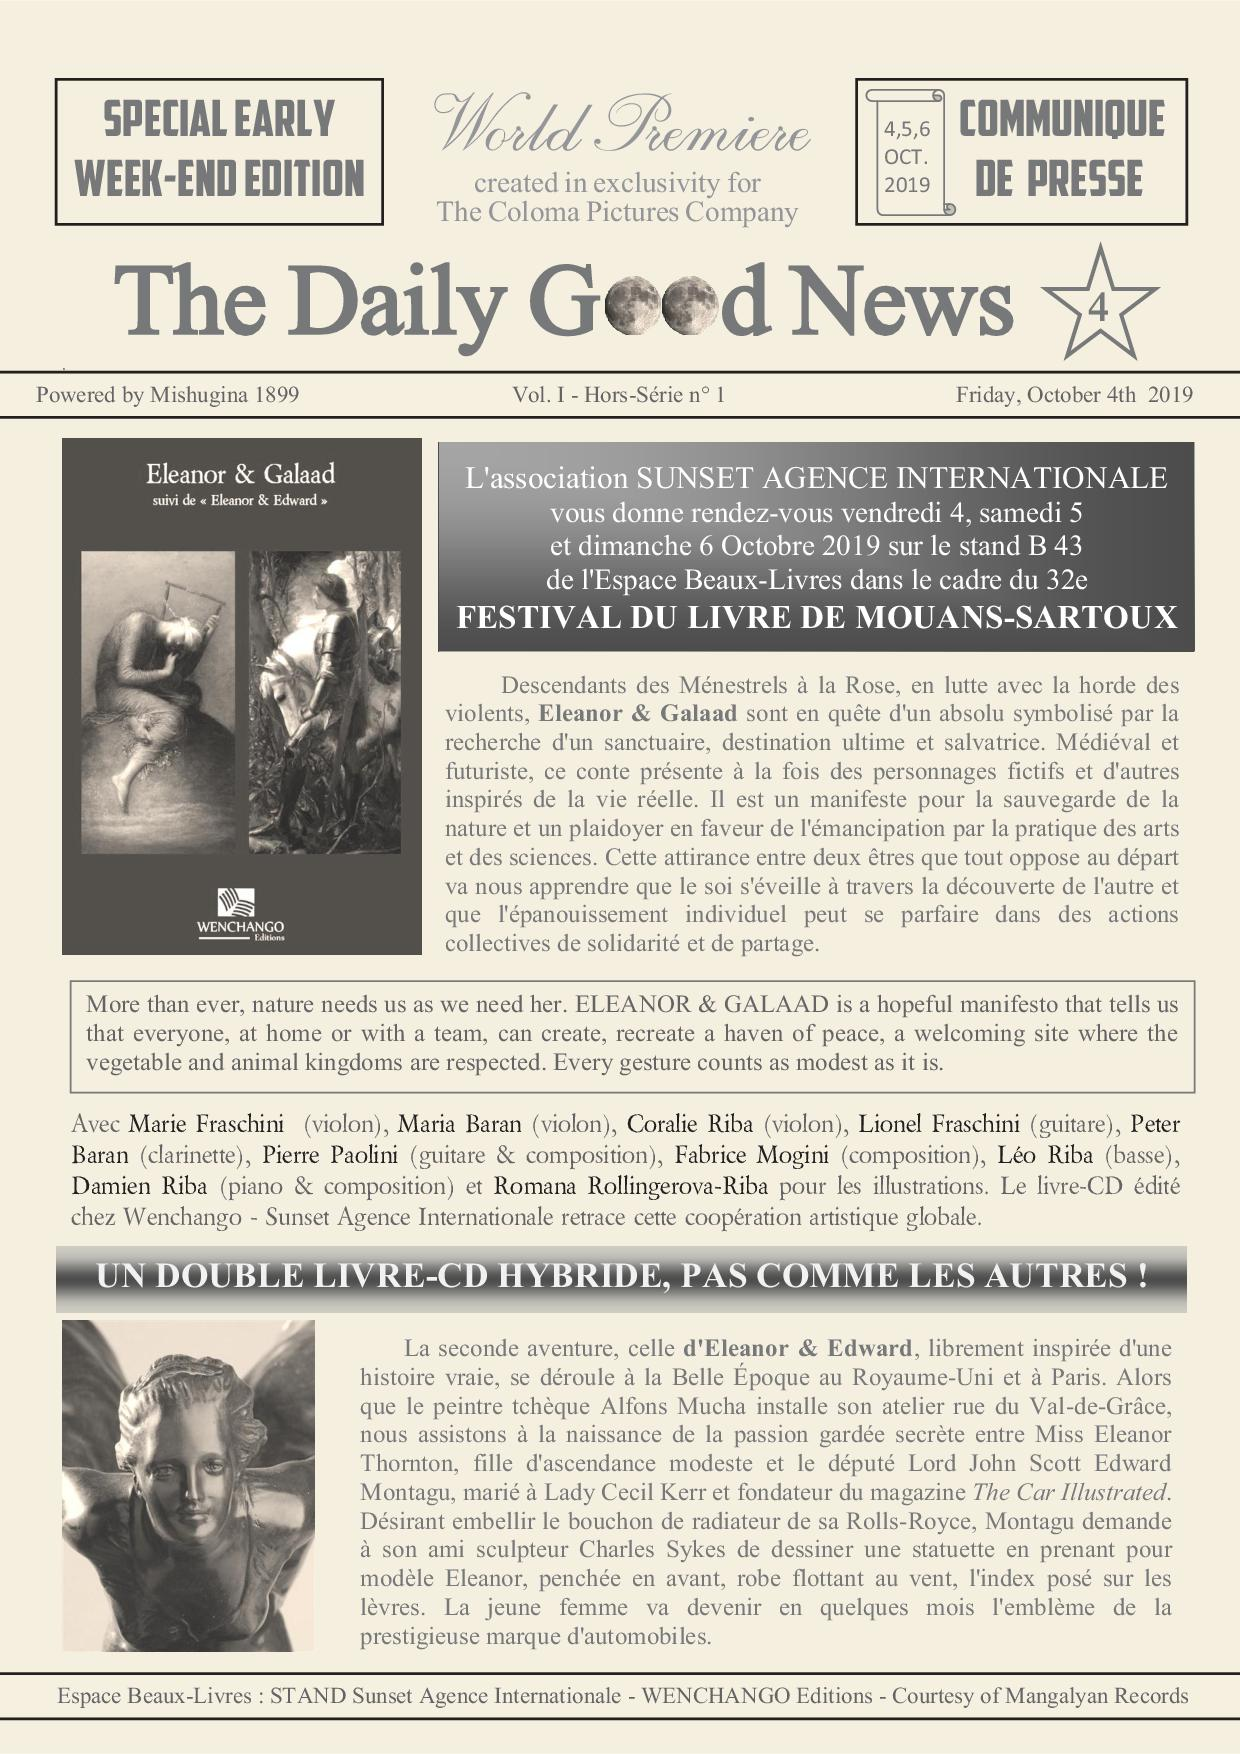 THE DAILY GOOD NEWS / 4